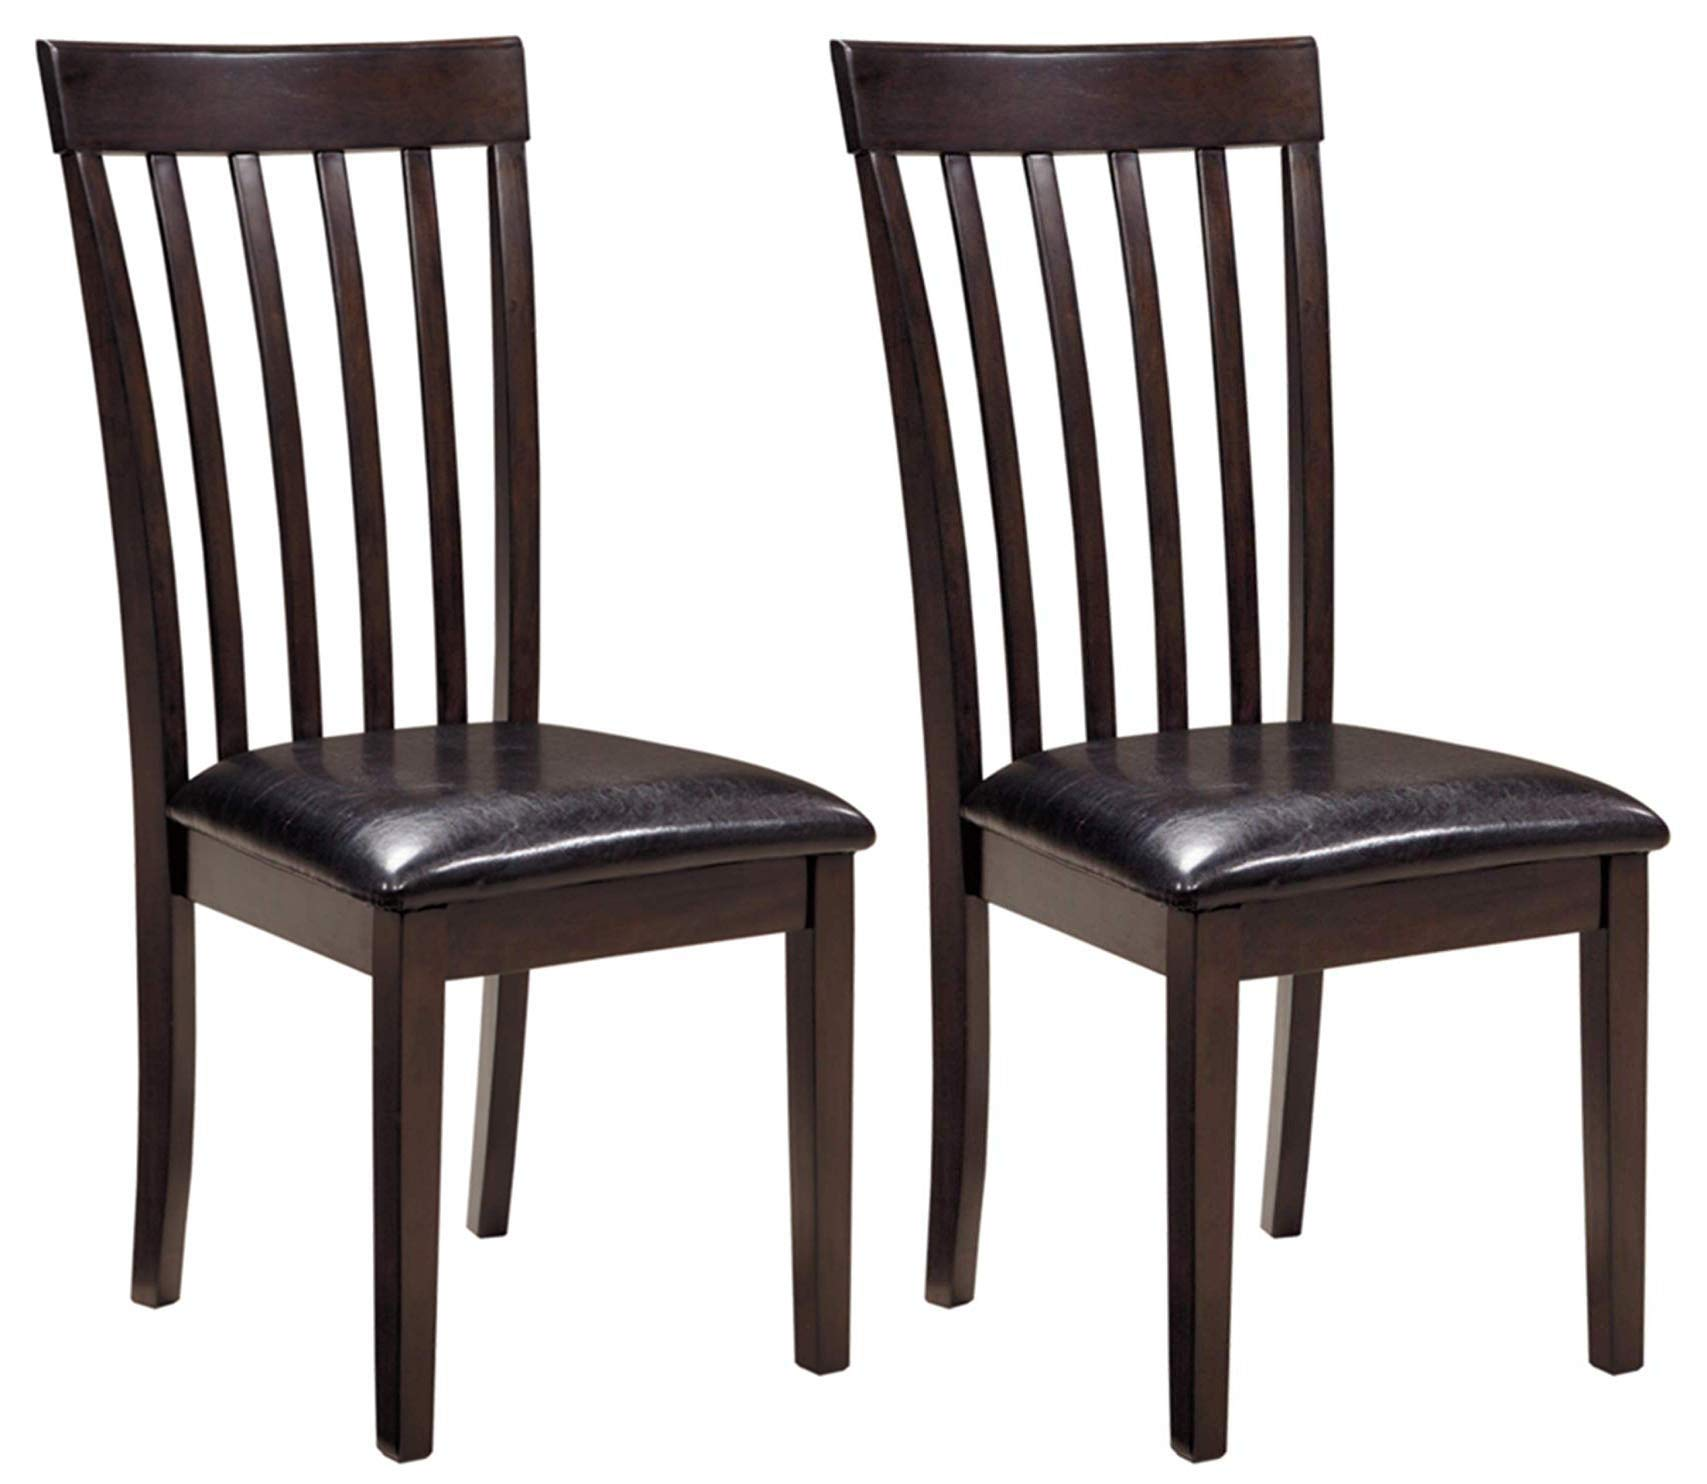 Ashley Furniture Signature Design - Hammis Dining Room Chair - Contemporary - Set of 2 - Dark Brown by Signature Design by Ashley